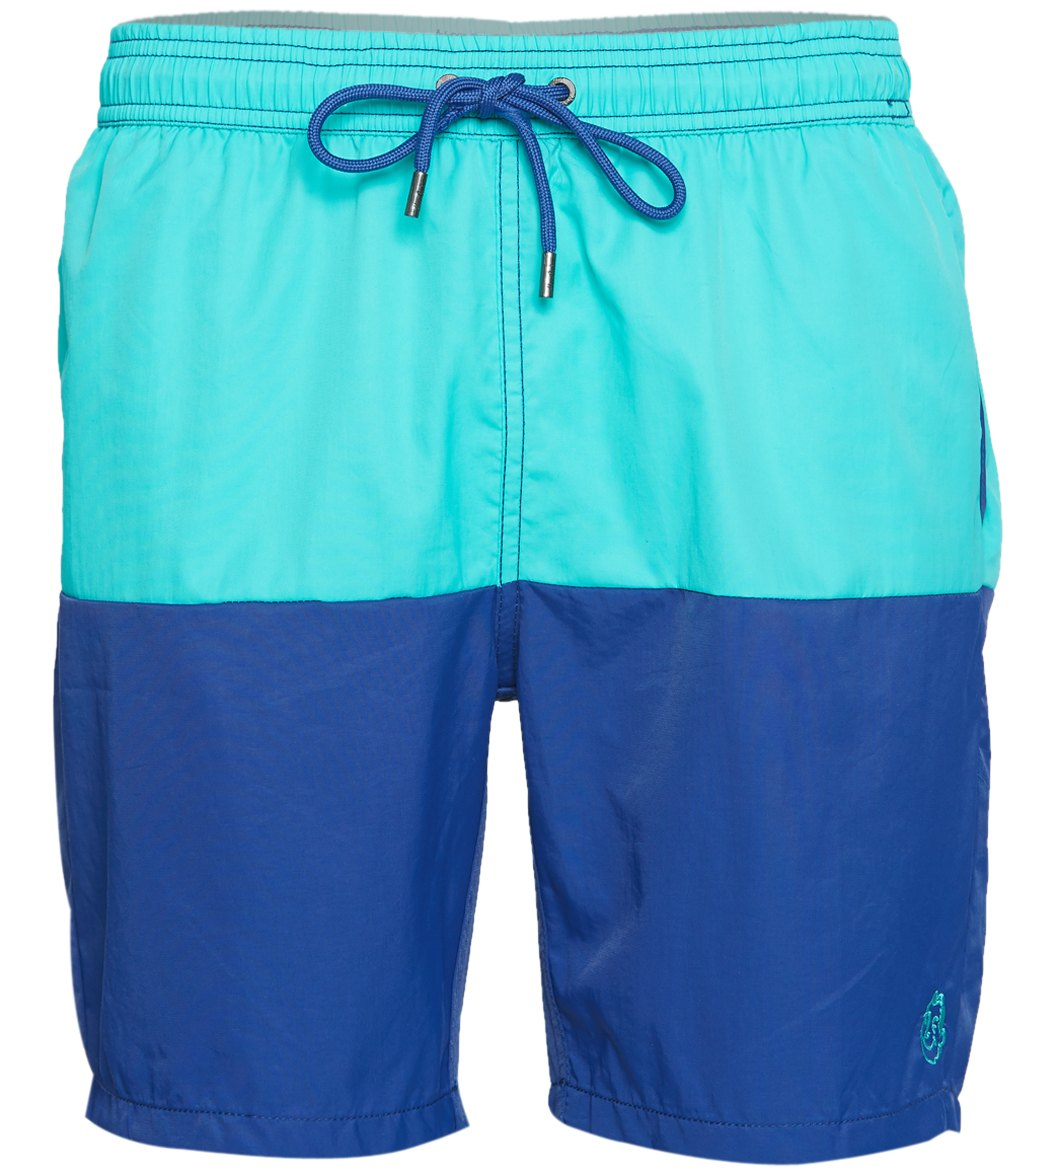 1fbe1b1e27 Mr.Swim Dale Color Block Swim Trunk at SwimOutlet.com - Free Shipping